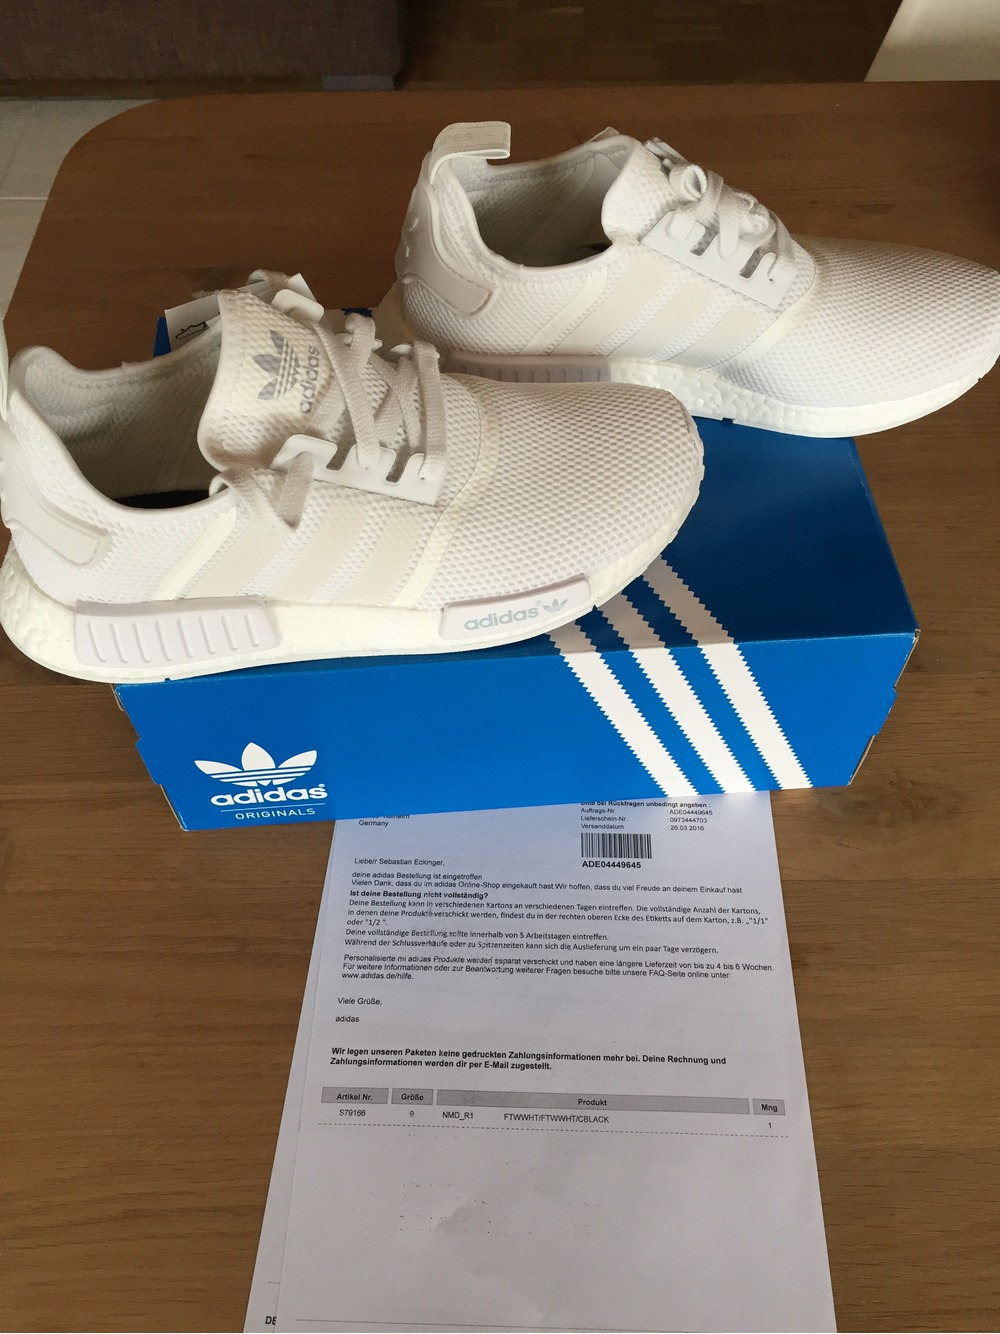 kotzlo Adidas NMD R1 all white mesh (#322356) from daHirsn at KLEKT